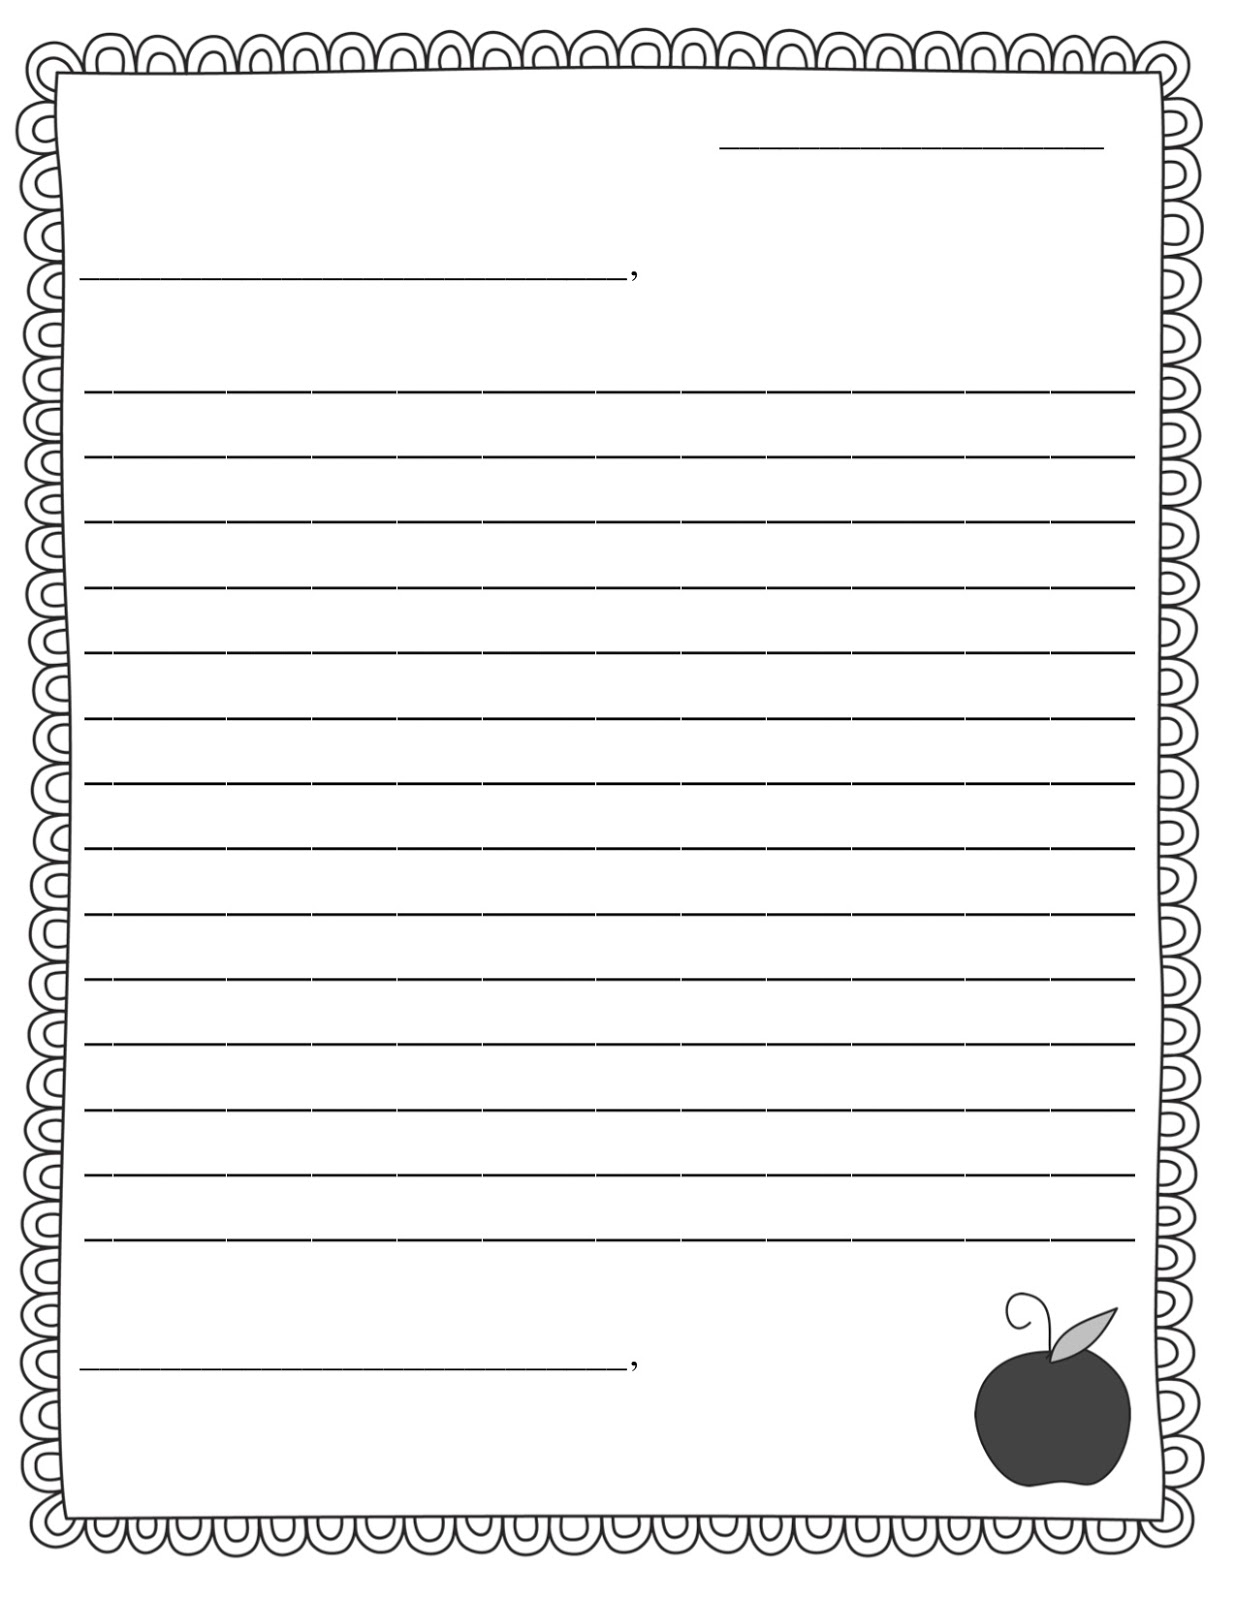 bTyE8Lqnc Teacher Appreciation Letter Th Grade Template on sign up sheet, superhero theme word, luncheon flyer, student note, luncheon invitation, letter 4th grade, weekly schedule, 2nd grade, note card, for notes, night invite,